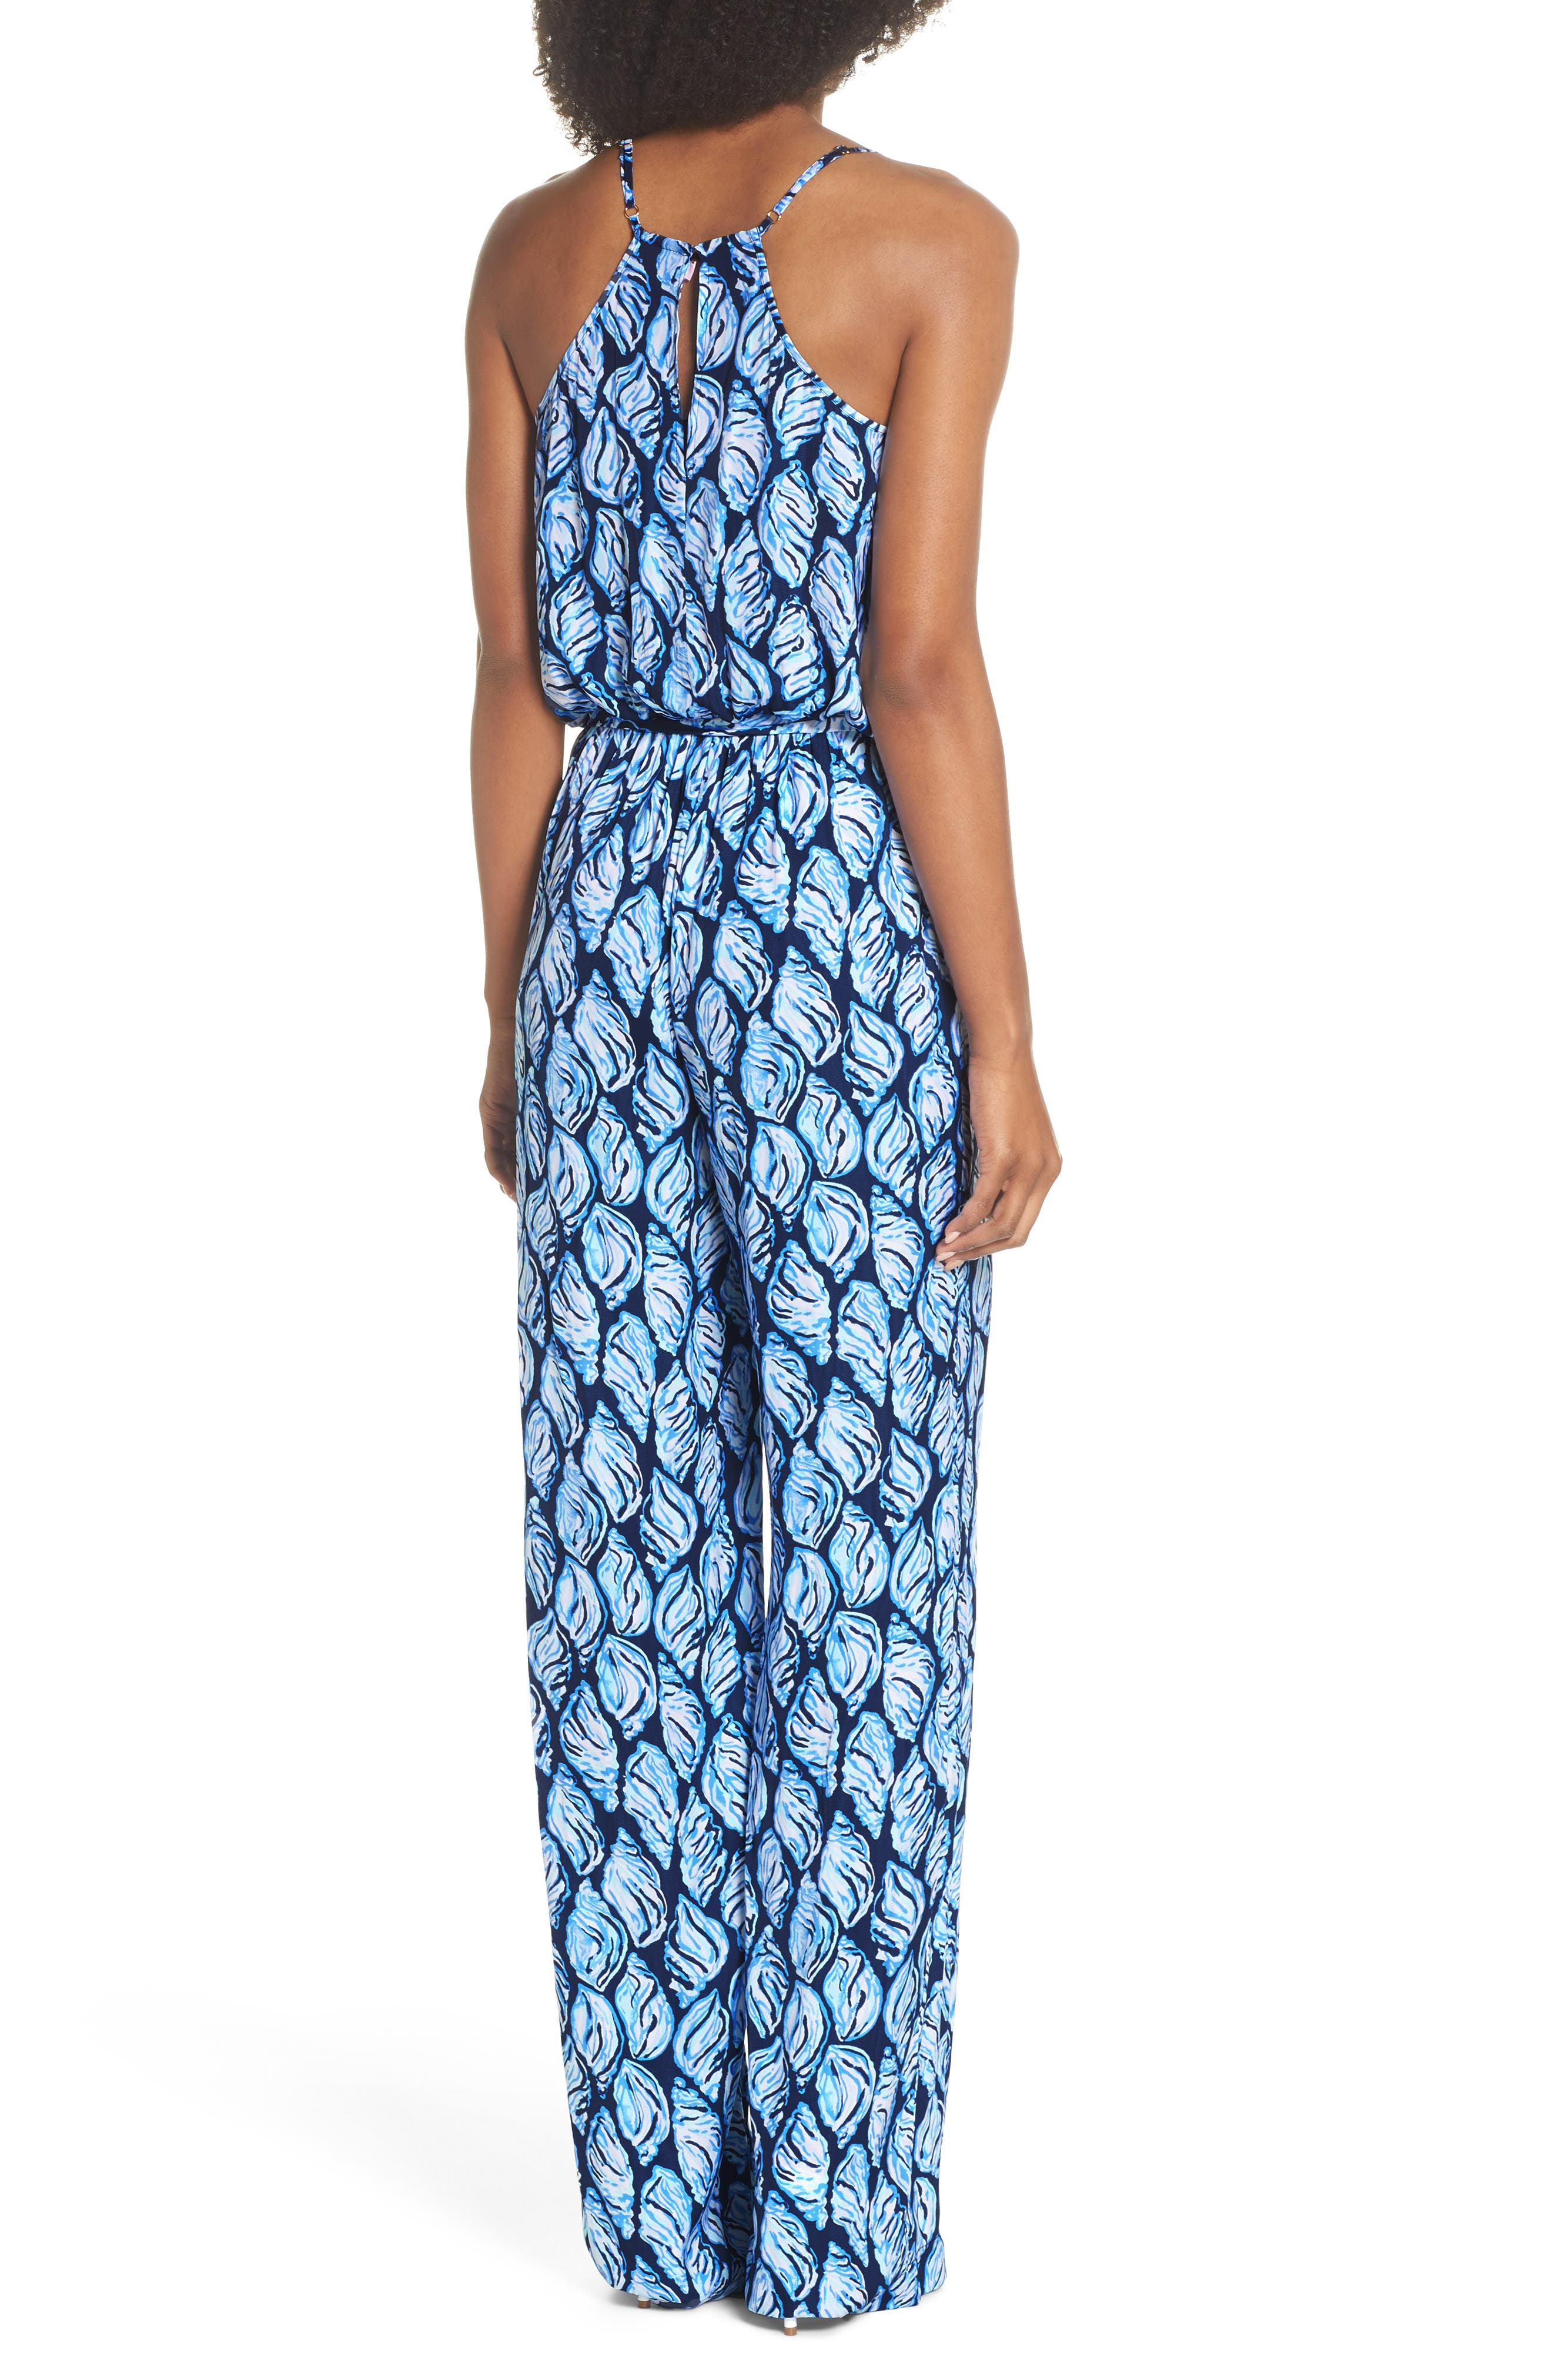 Lilly Pulizter<sup>®</sup> Dusk Sleeveless Jumpsuit,                             Alternate thumbnail 2, color,                             High Tide Drop In